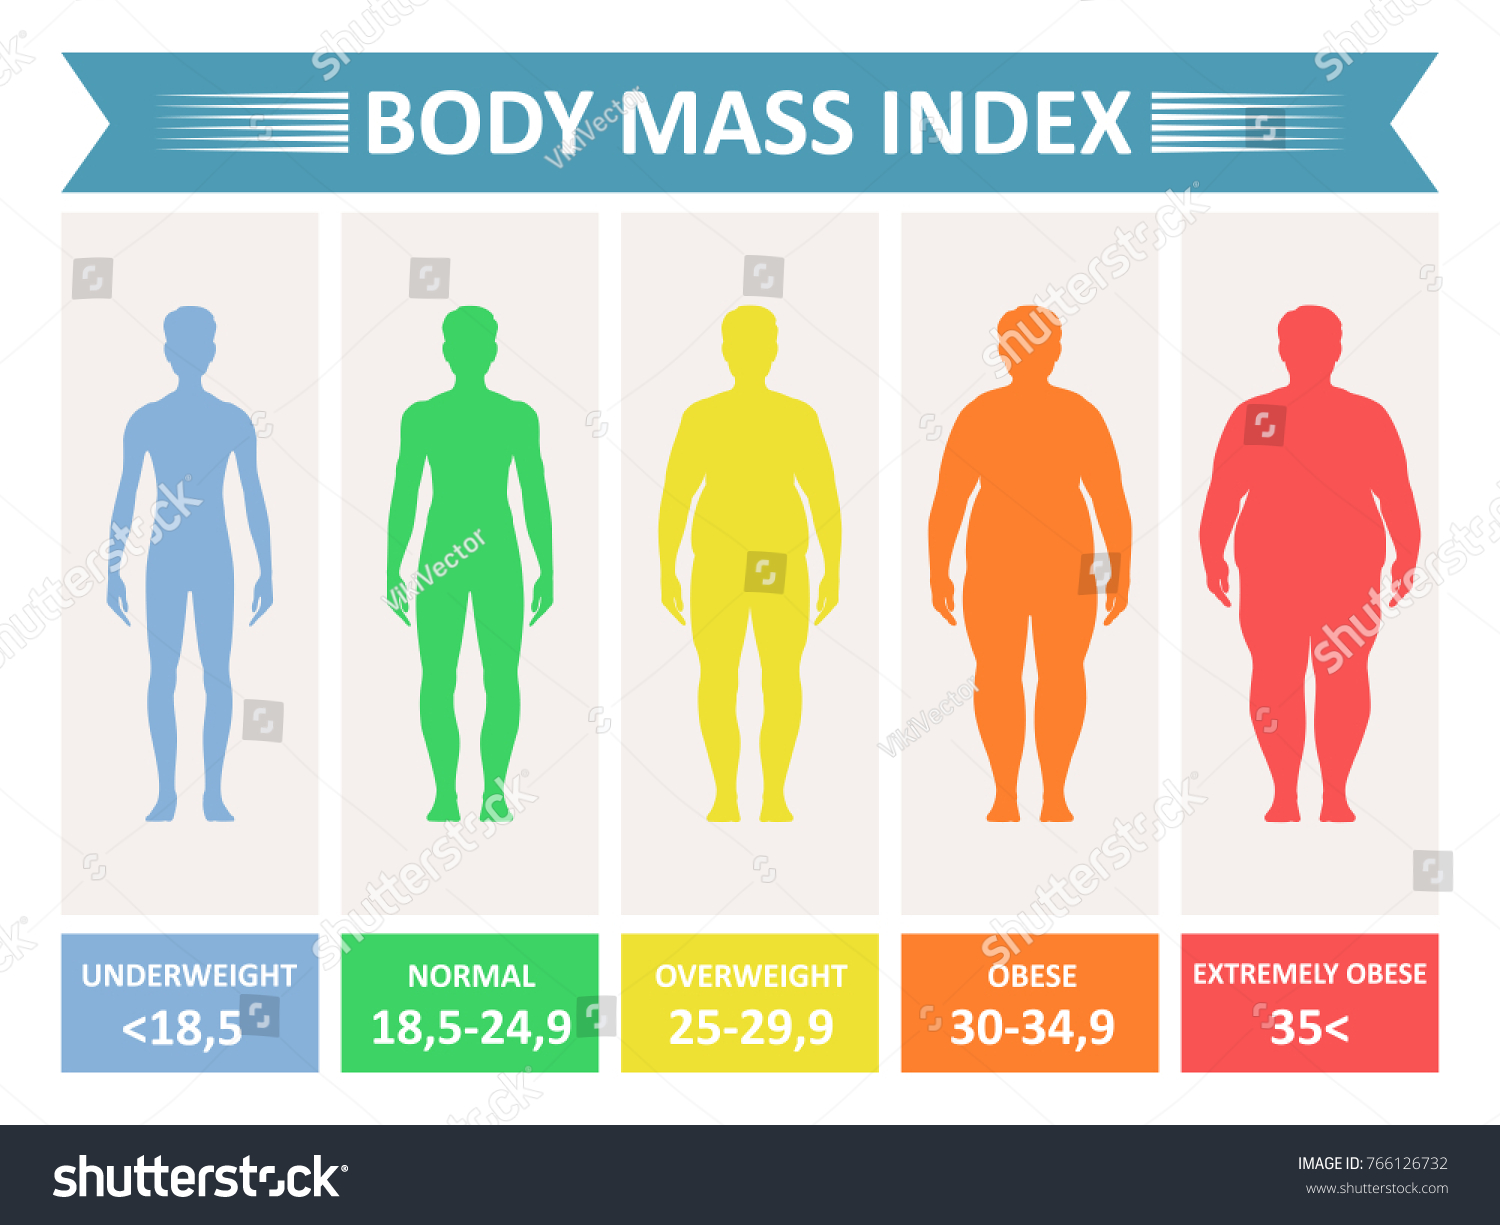 index mass body rating chart of body fat based on height and weight in kilograms